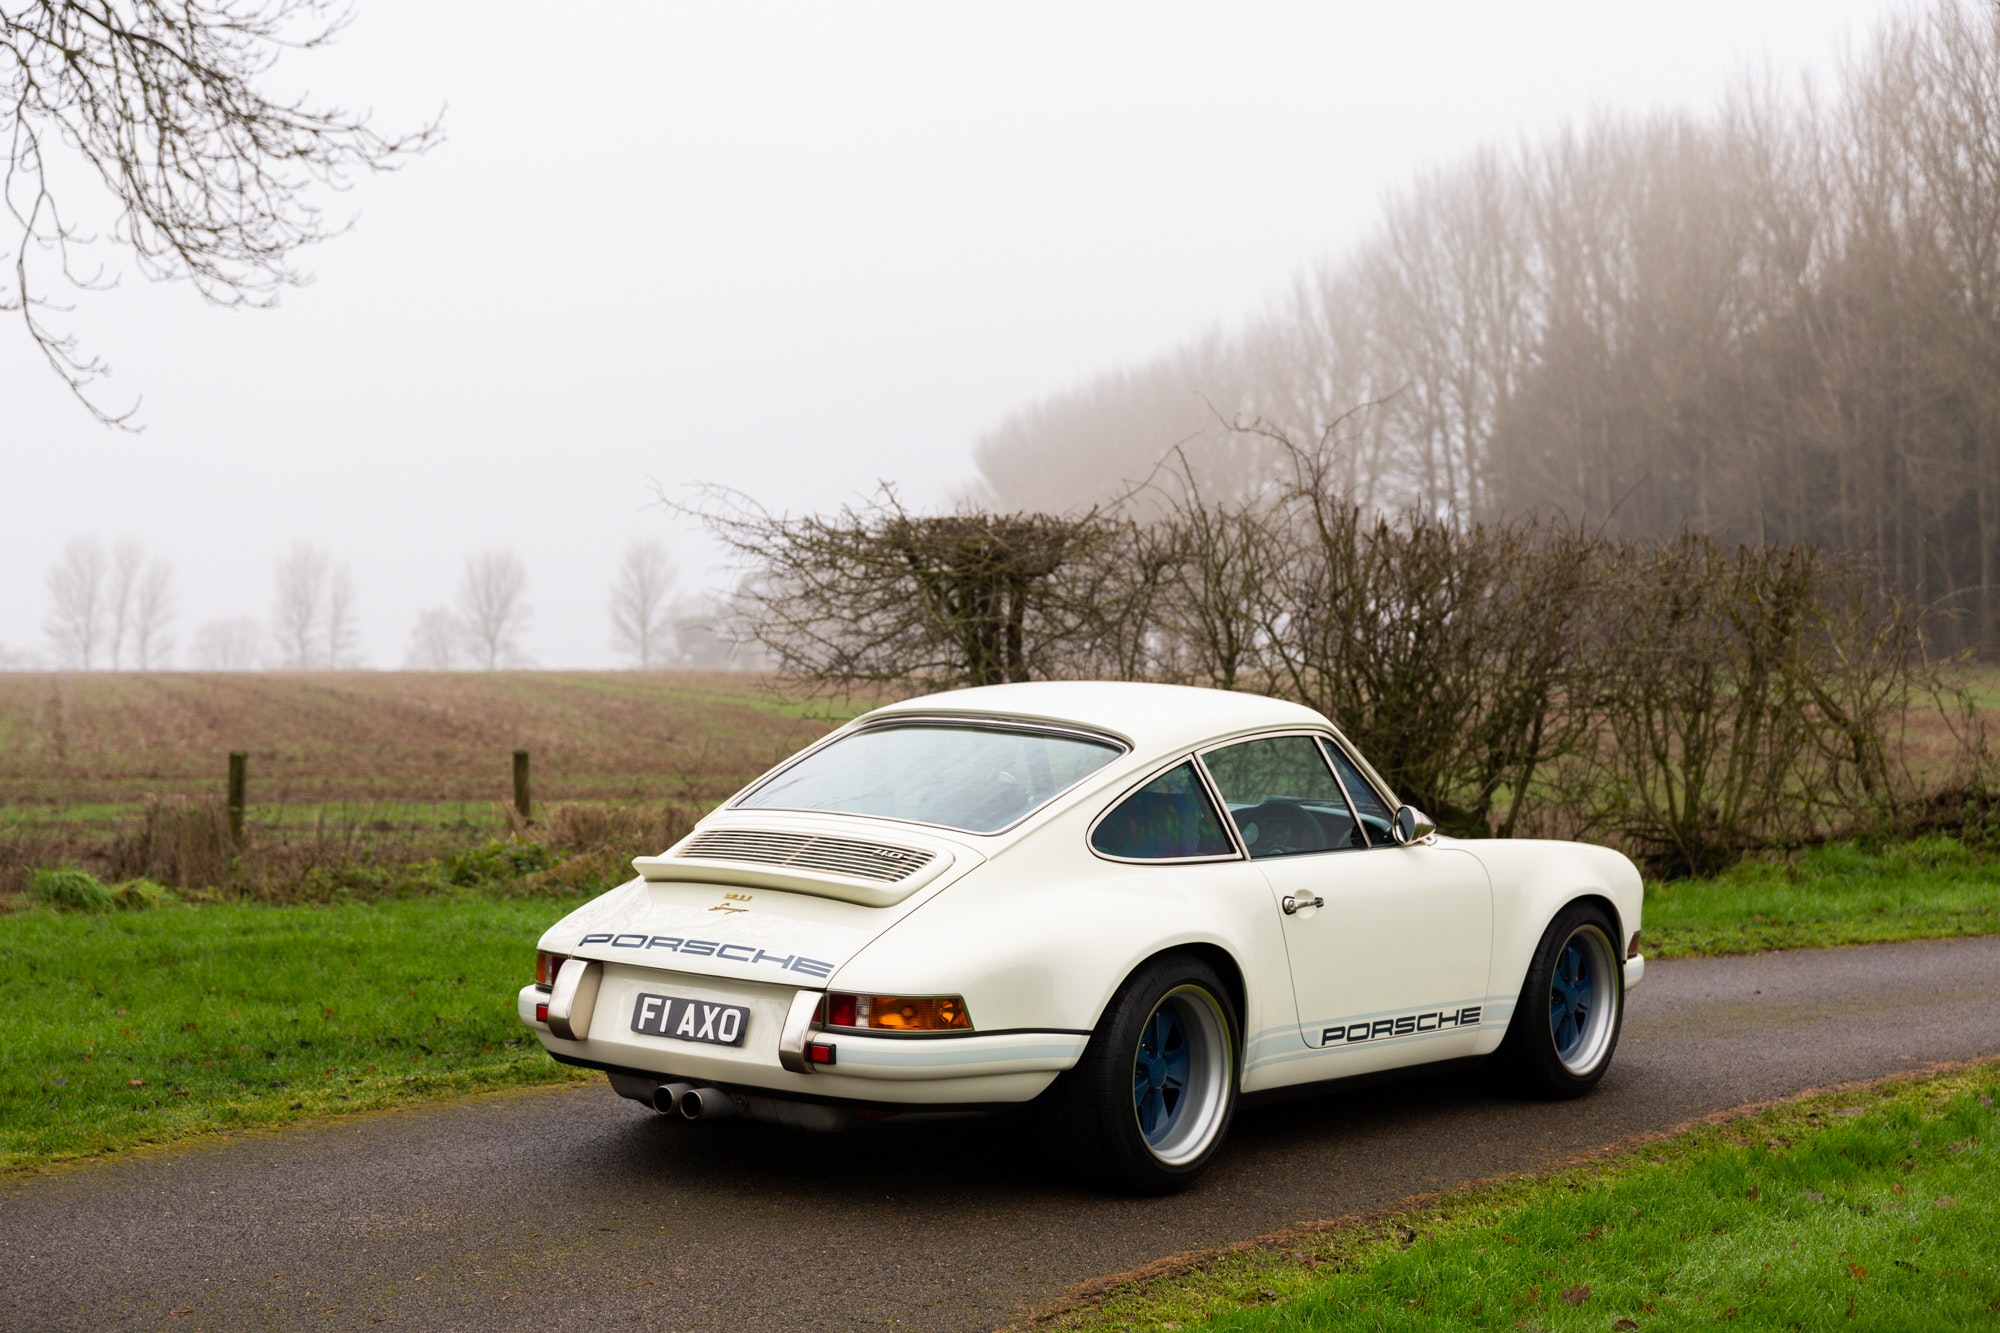 Gorgeous Rhd Singer 911 Sells For Record Amount In The Uk Autoevolution